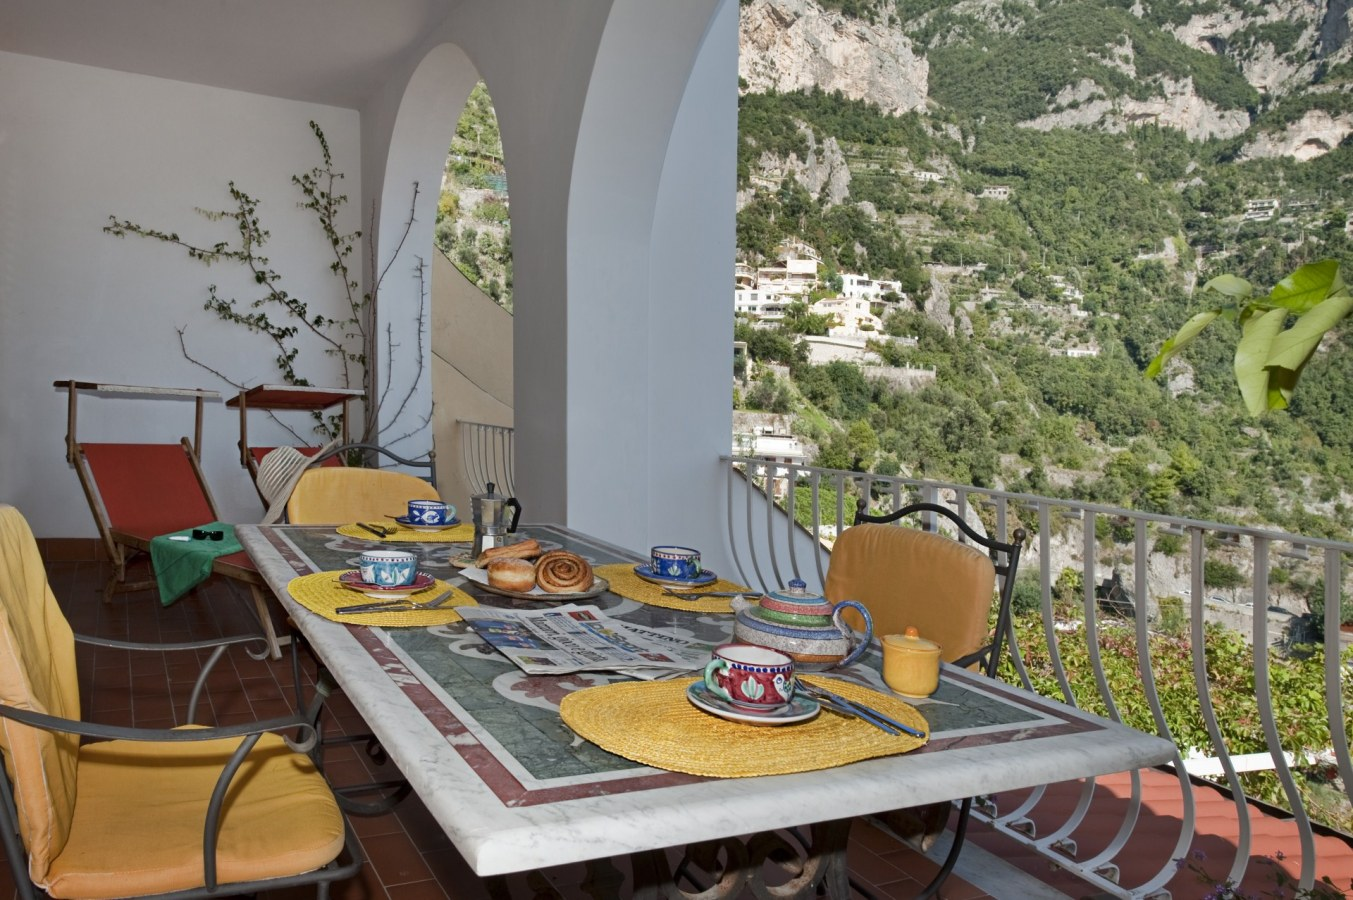 Apartment in Positano - Positano accomodation holiday vacation ...